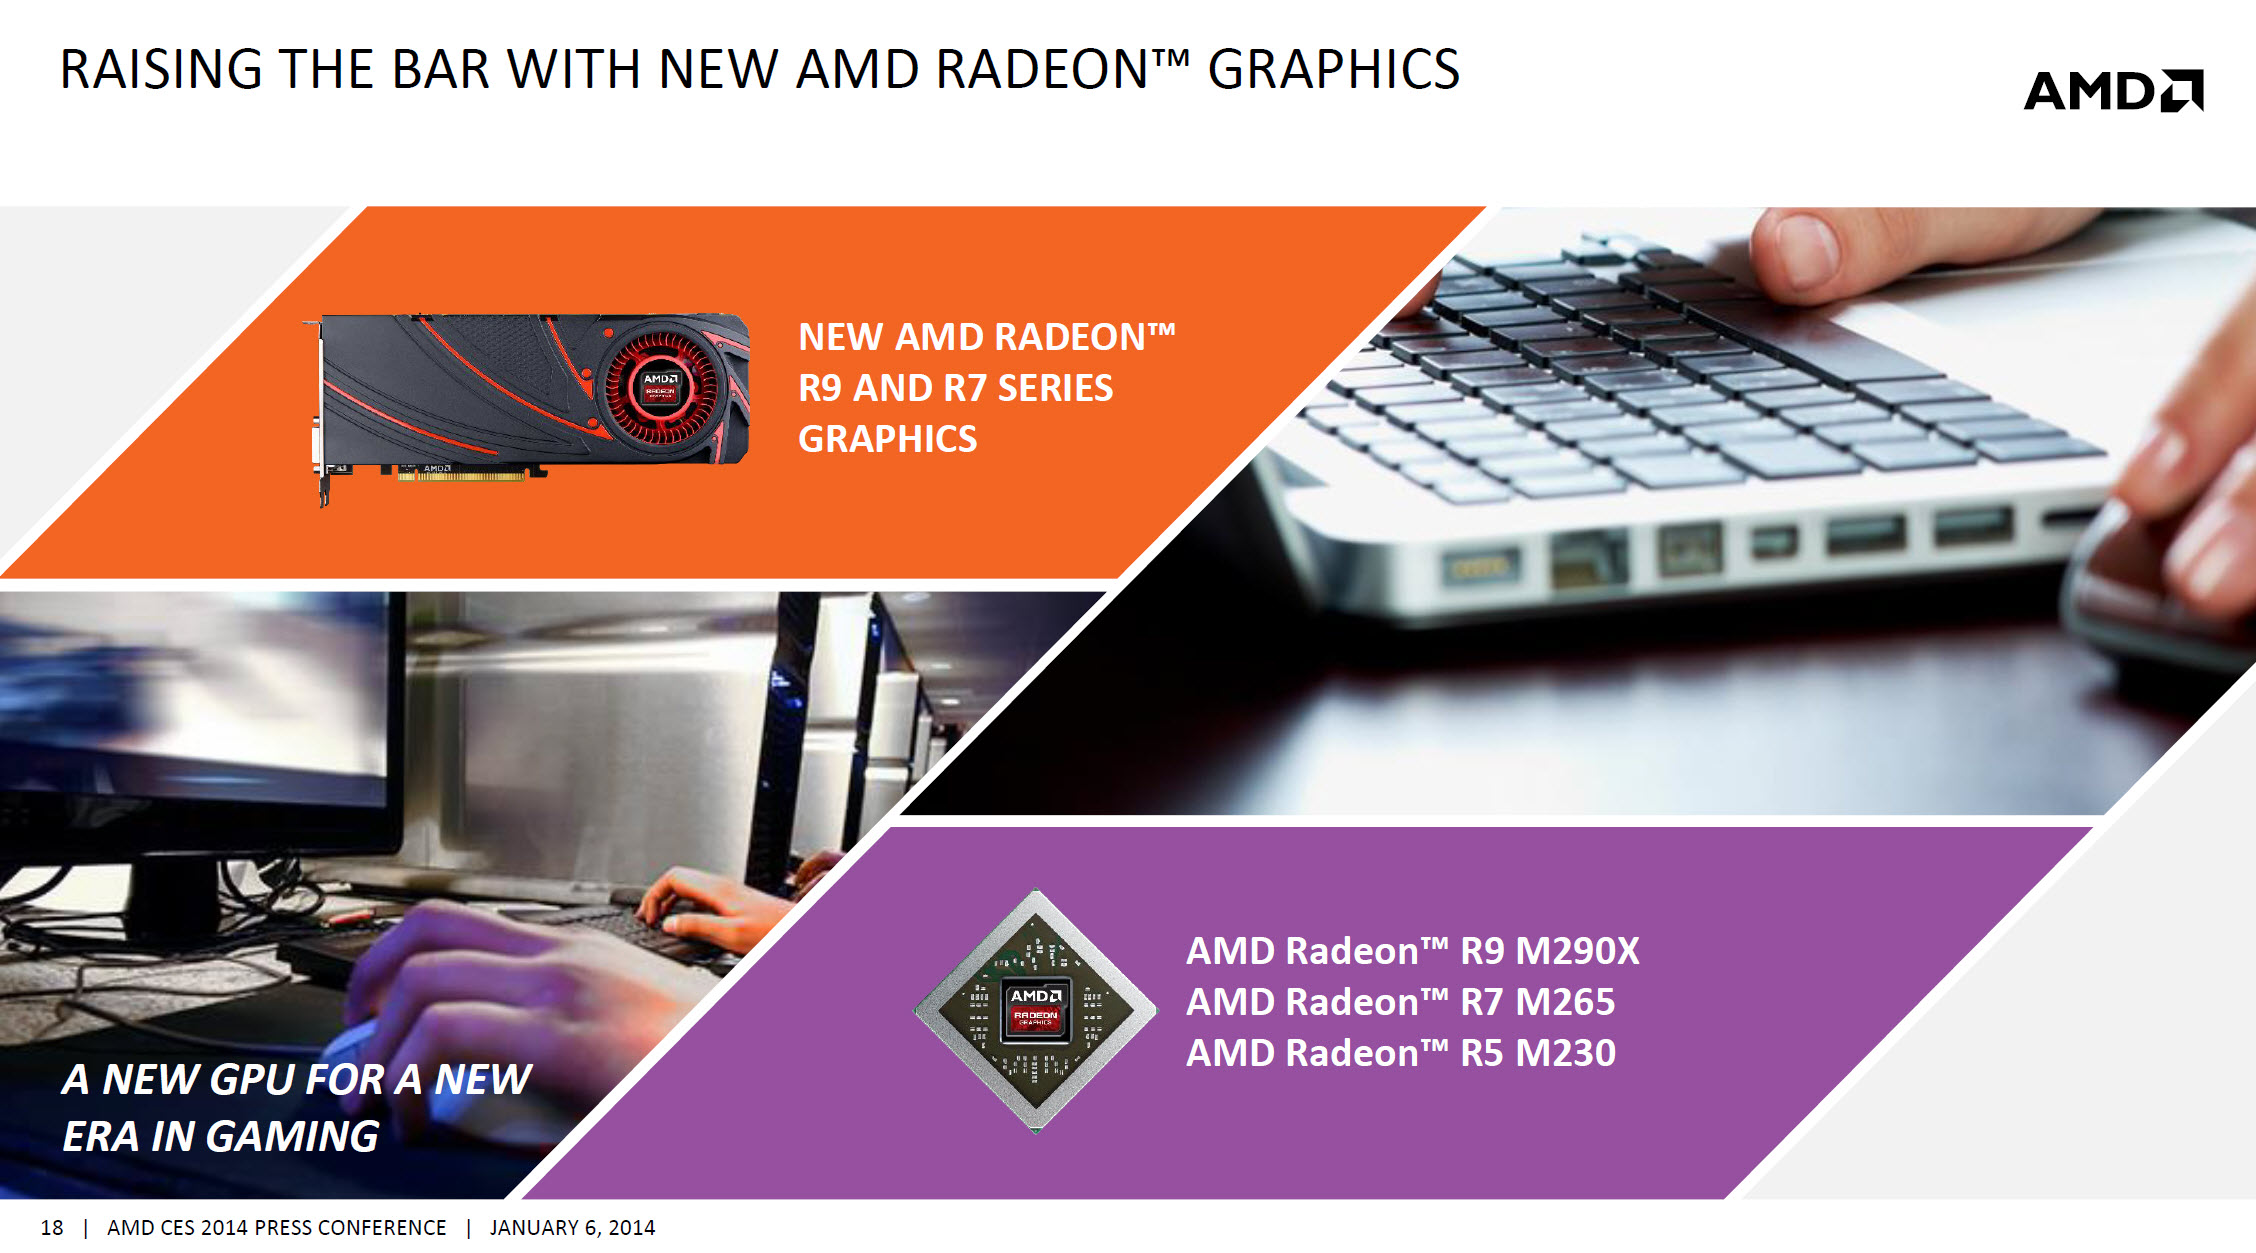 DRIVER FOR AMD RADEON R5 M200 SERIES